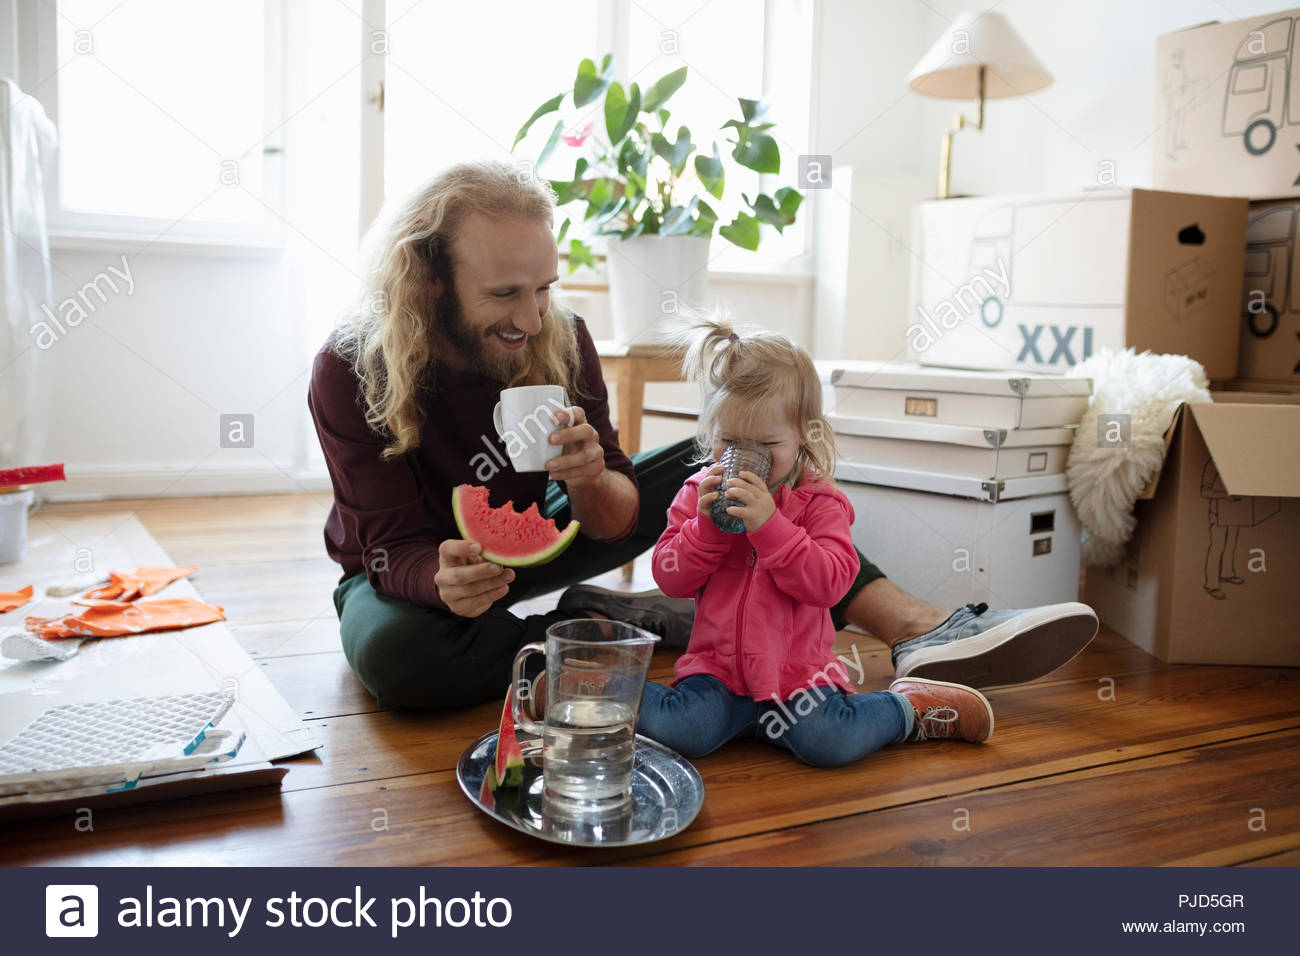 Father and daughter eating watermelon and drinking water, taking a break from moving and painting - Stock Image